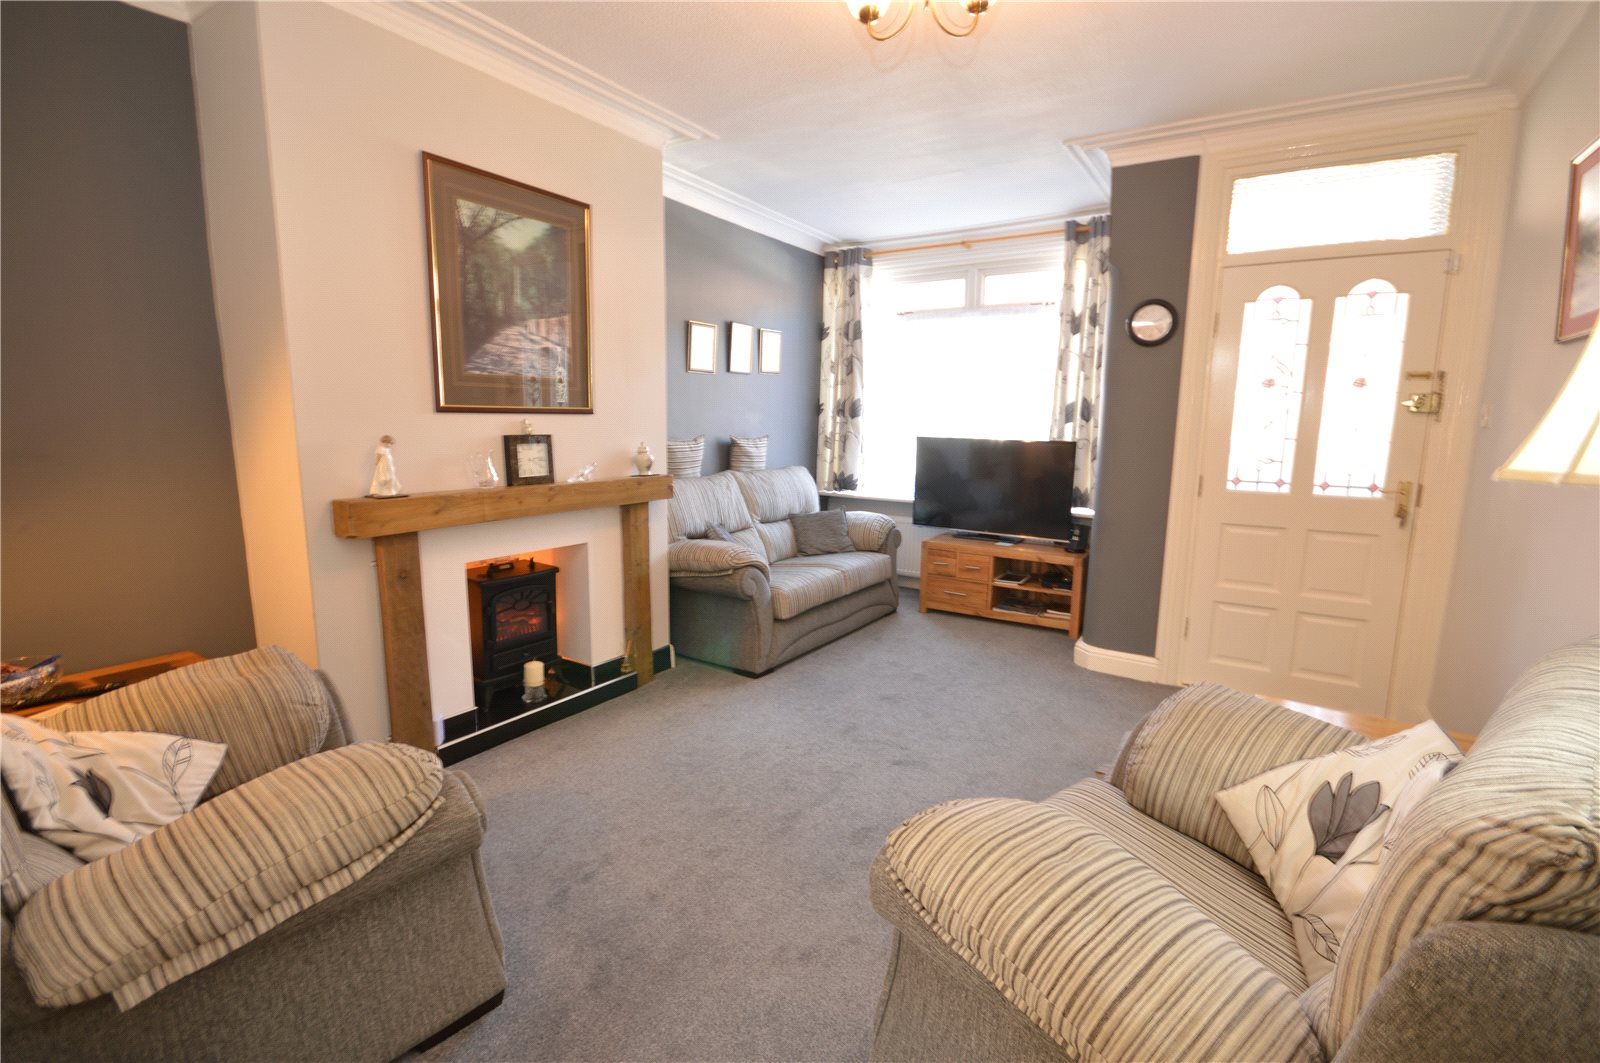 Property for sale in Beeston reception room